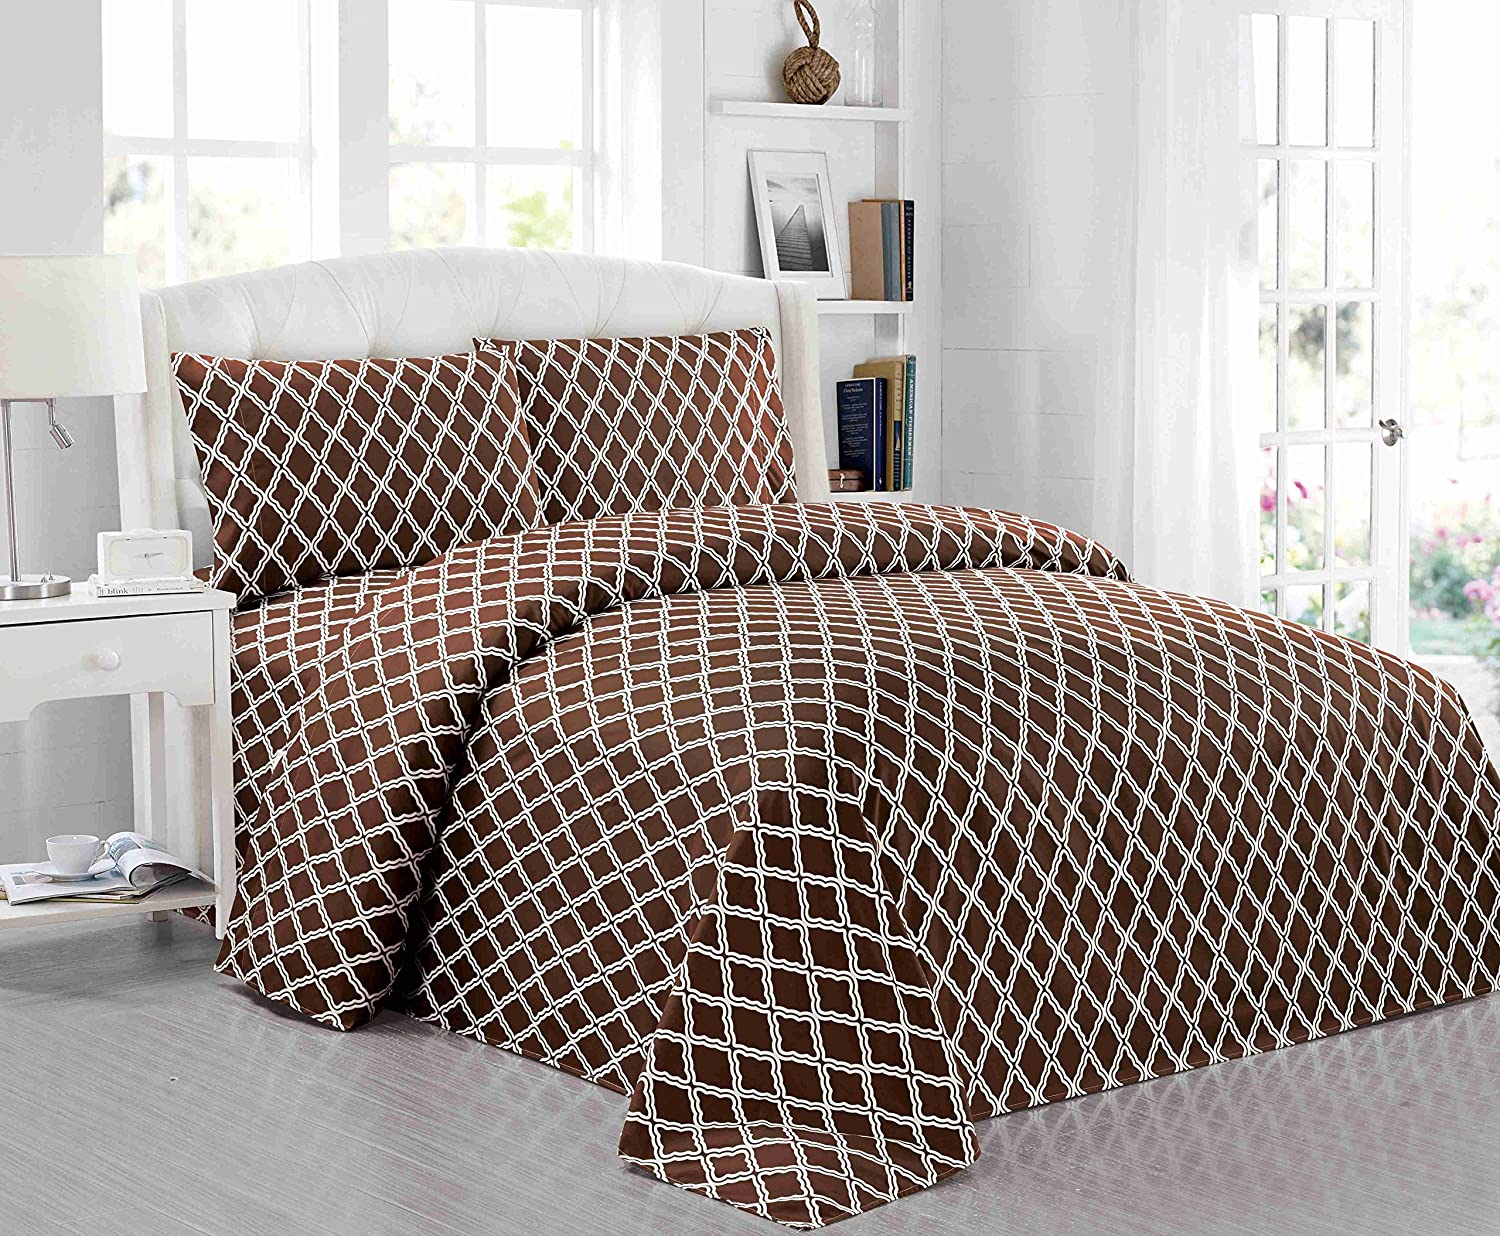 All American Collection New Microfiber 4 Piece Sheet Set Geometric Cone Design Printing Queen, Coffee